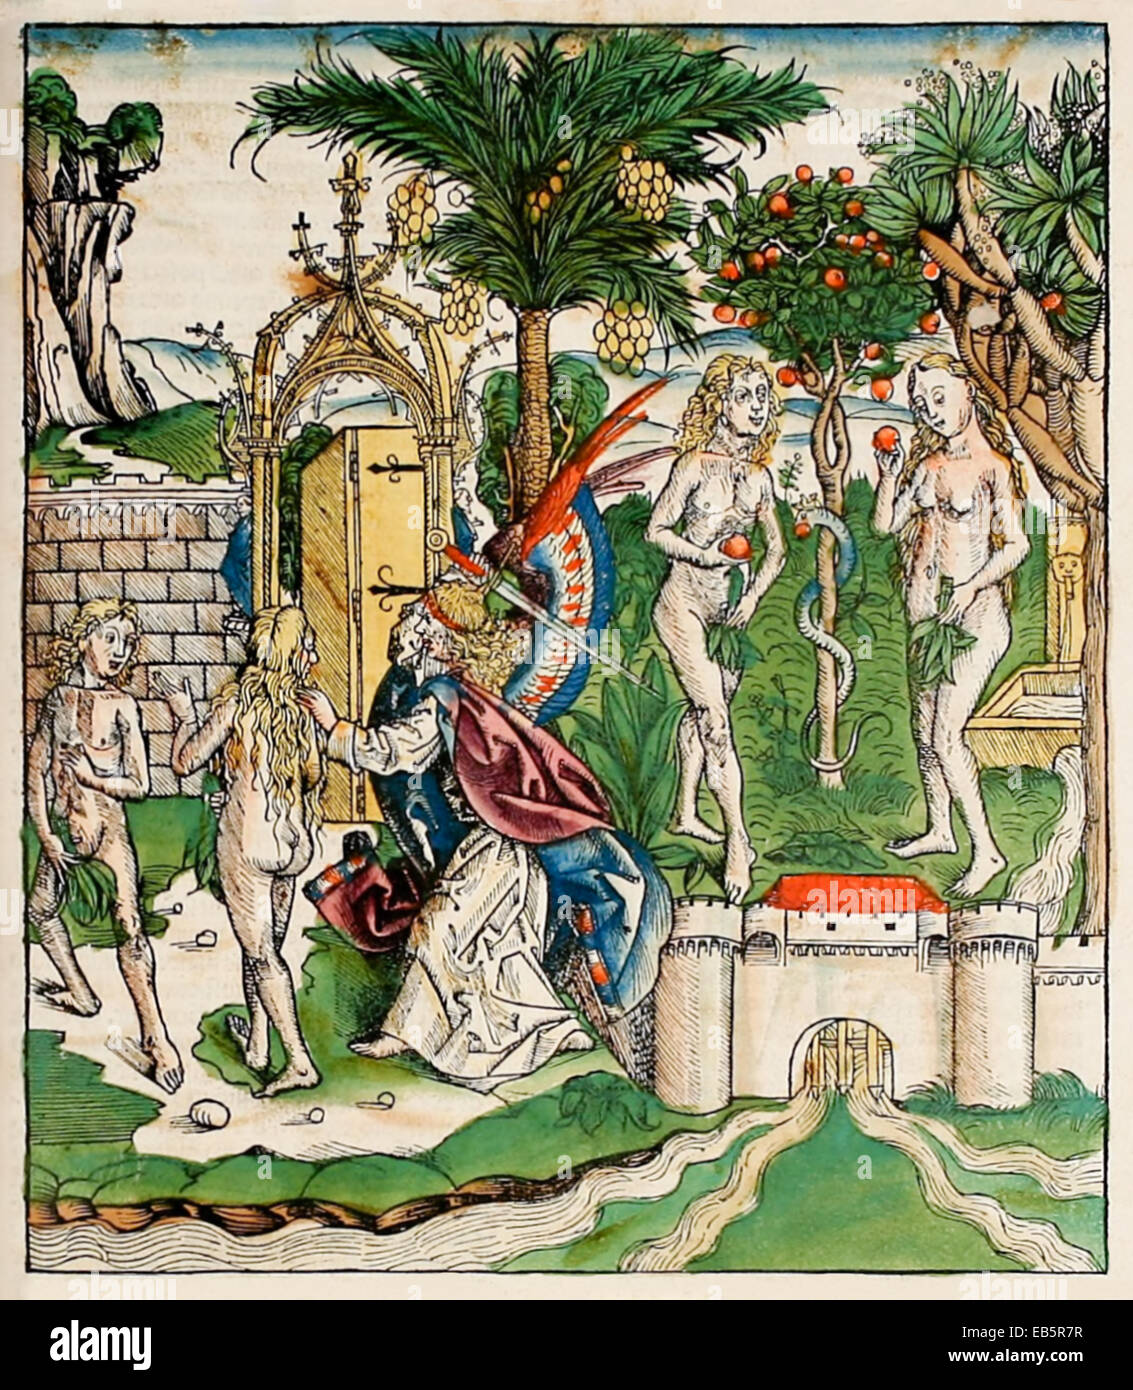 banishment of adam and eve god banishes adam and eve from the